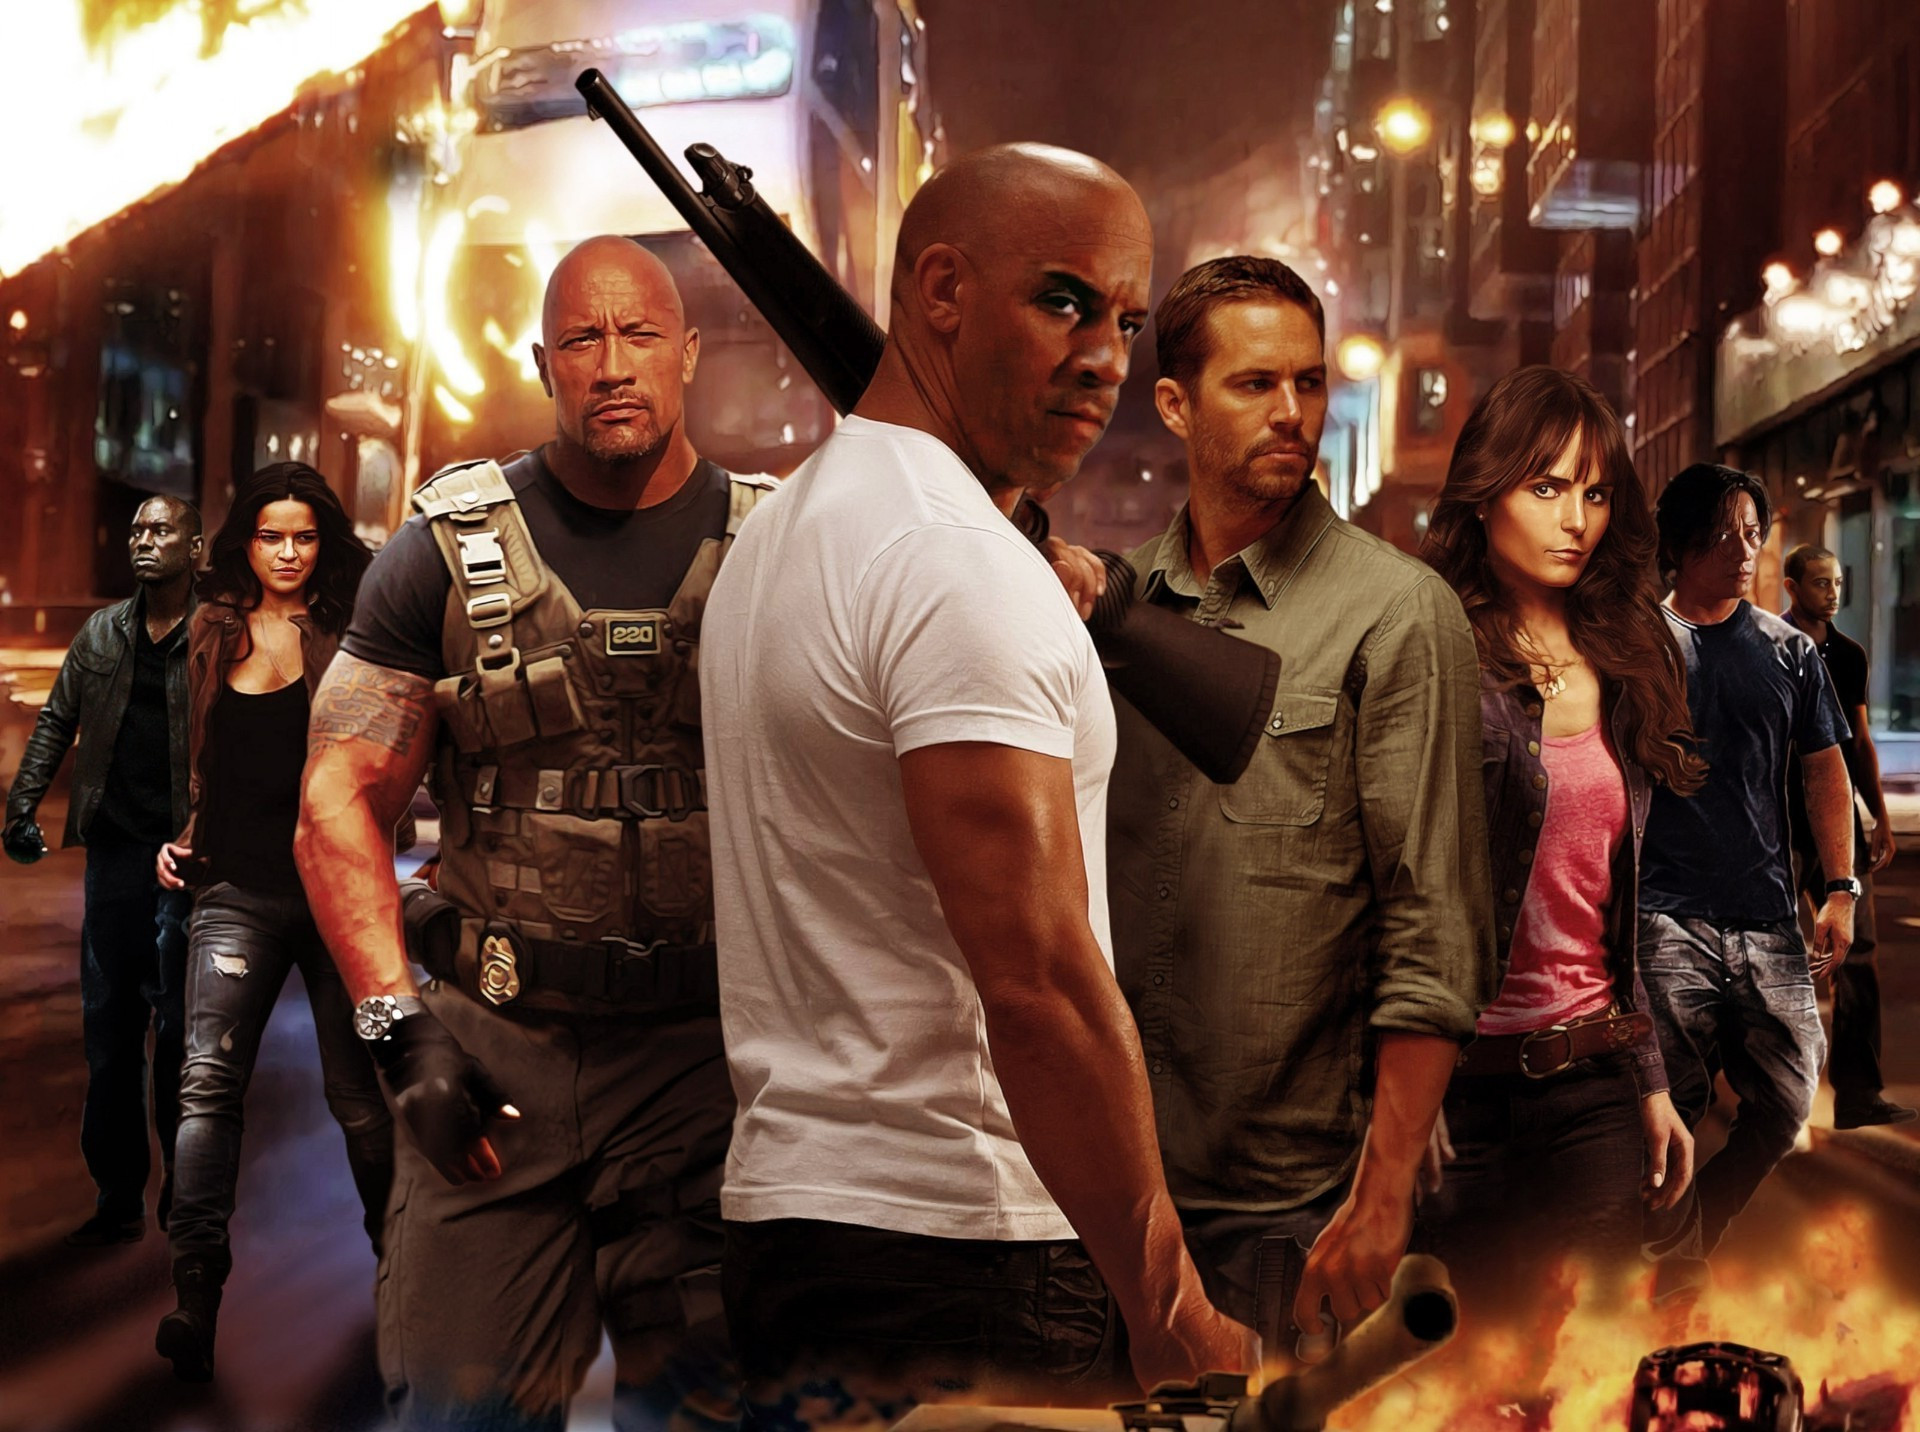 Fast and furious 6, the whole team headed by VIN Diesel in the collection